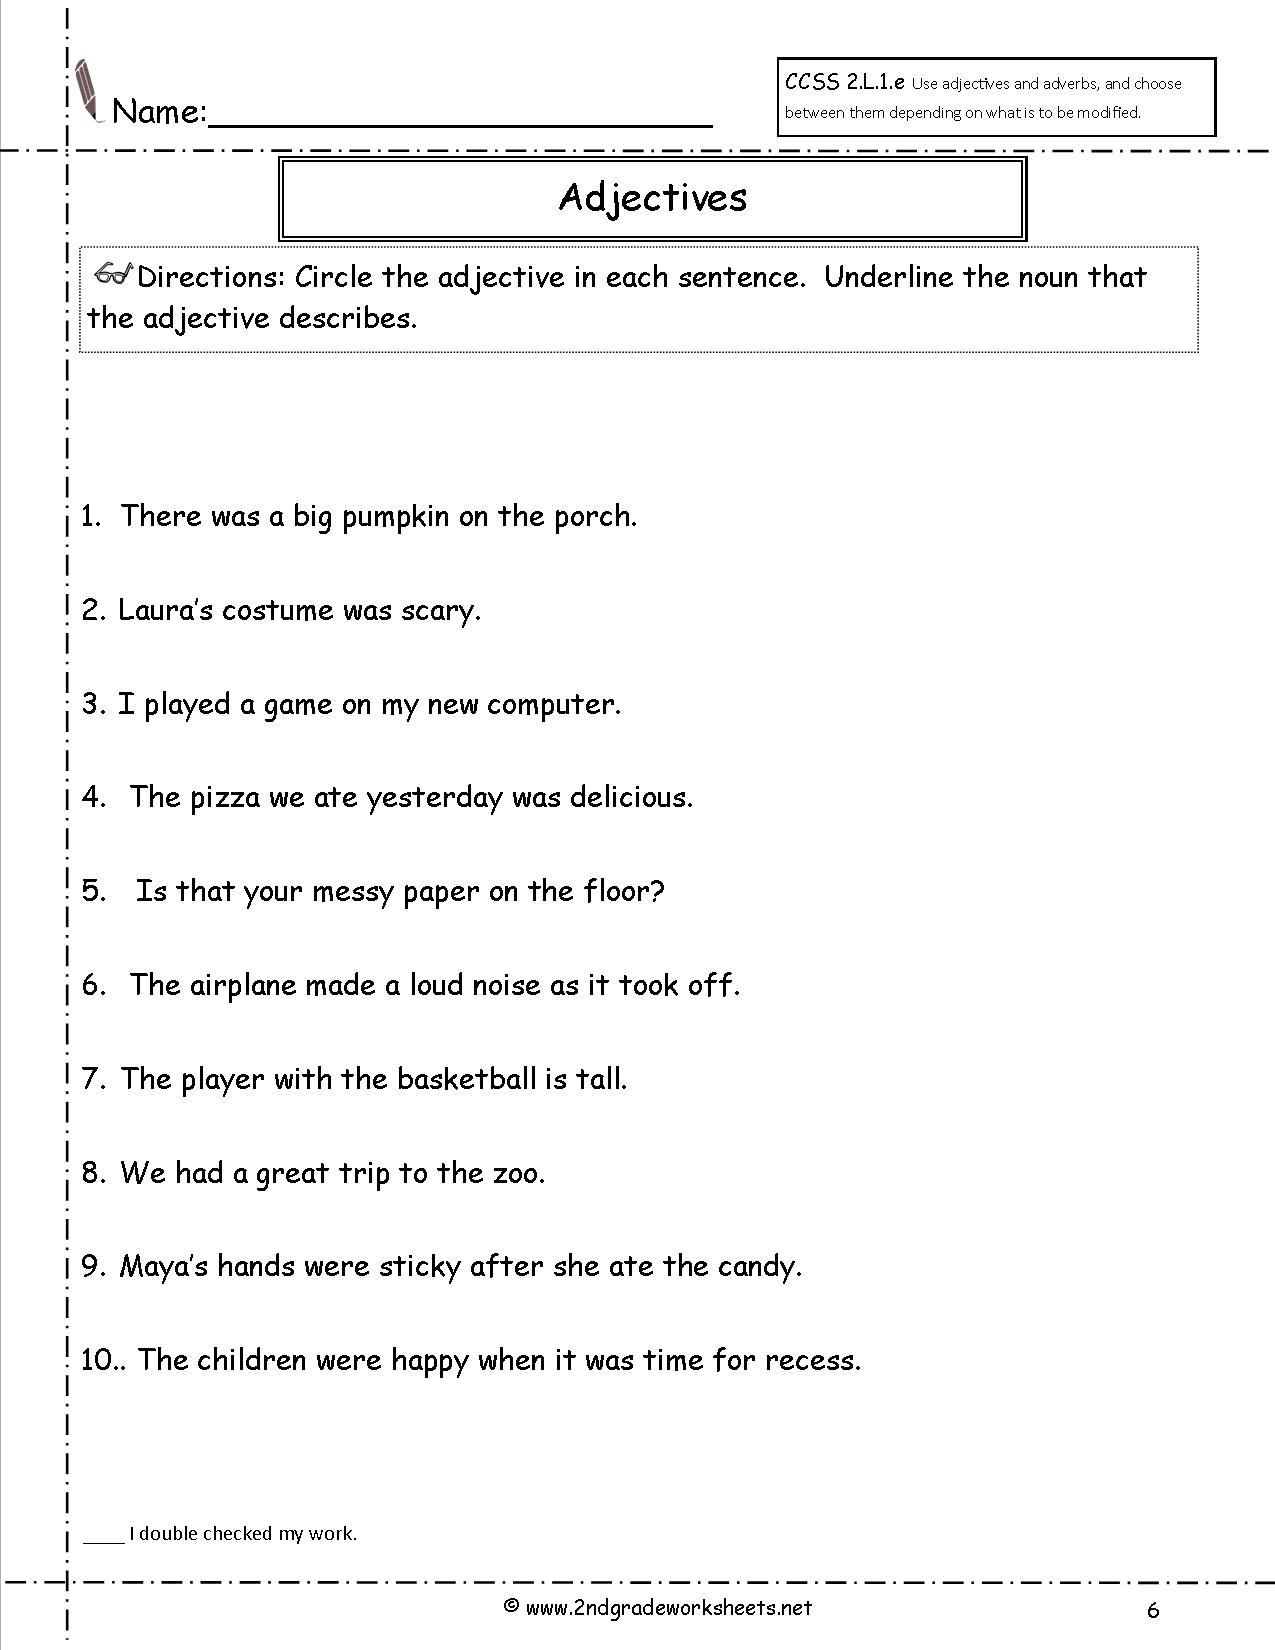 Printables Adjective Worksheet For Grade 2 worksheets on adjectives for grade 2 scalien free using worksheets